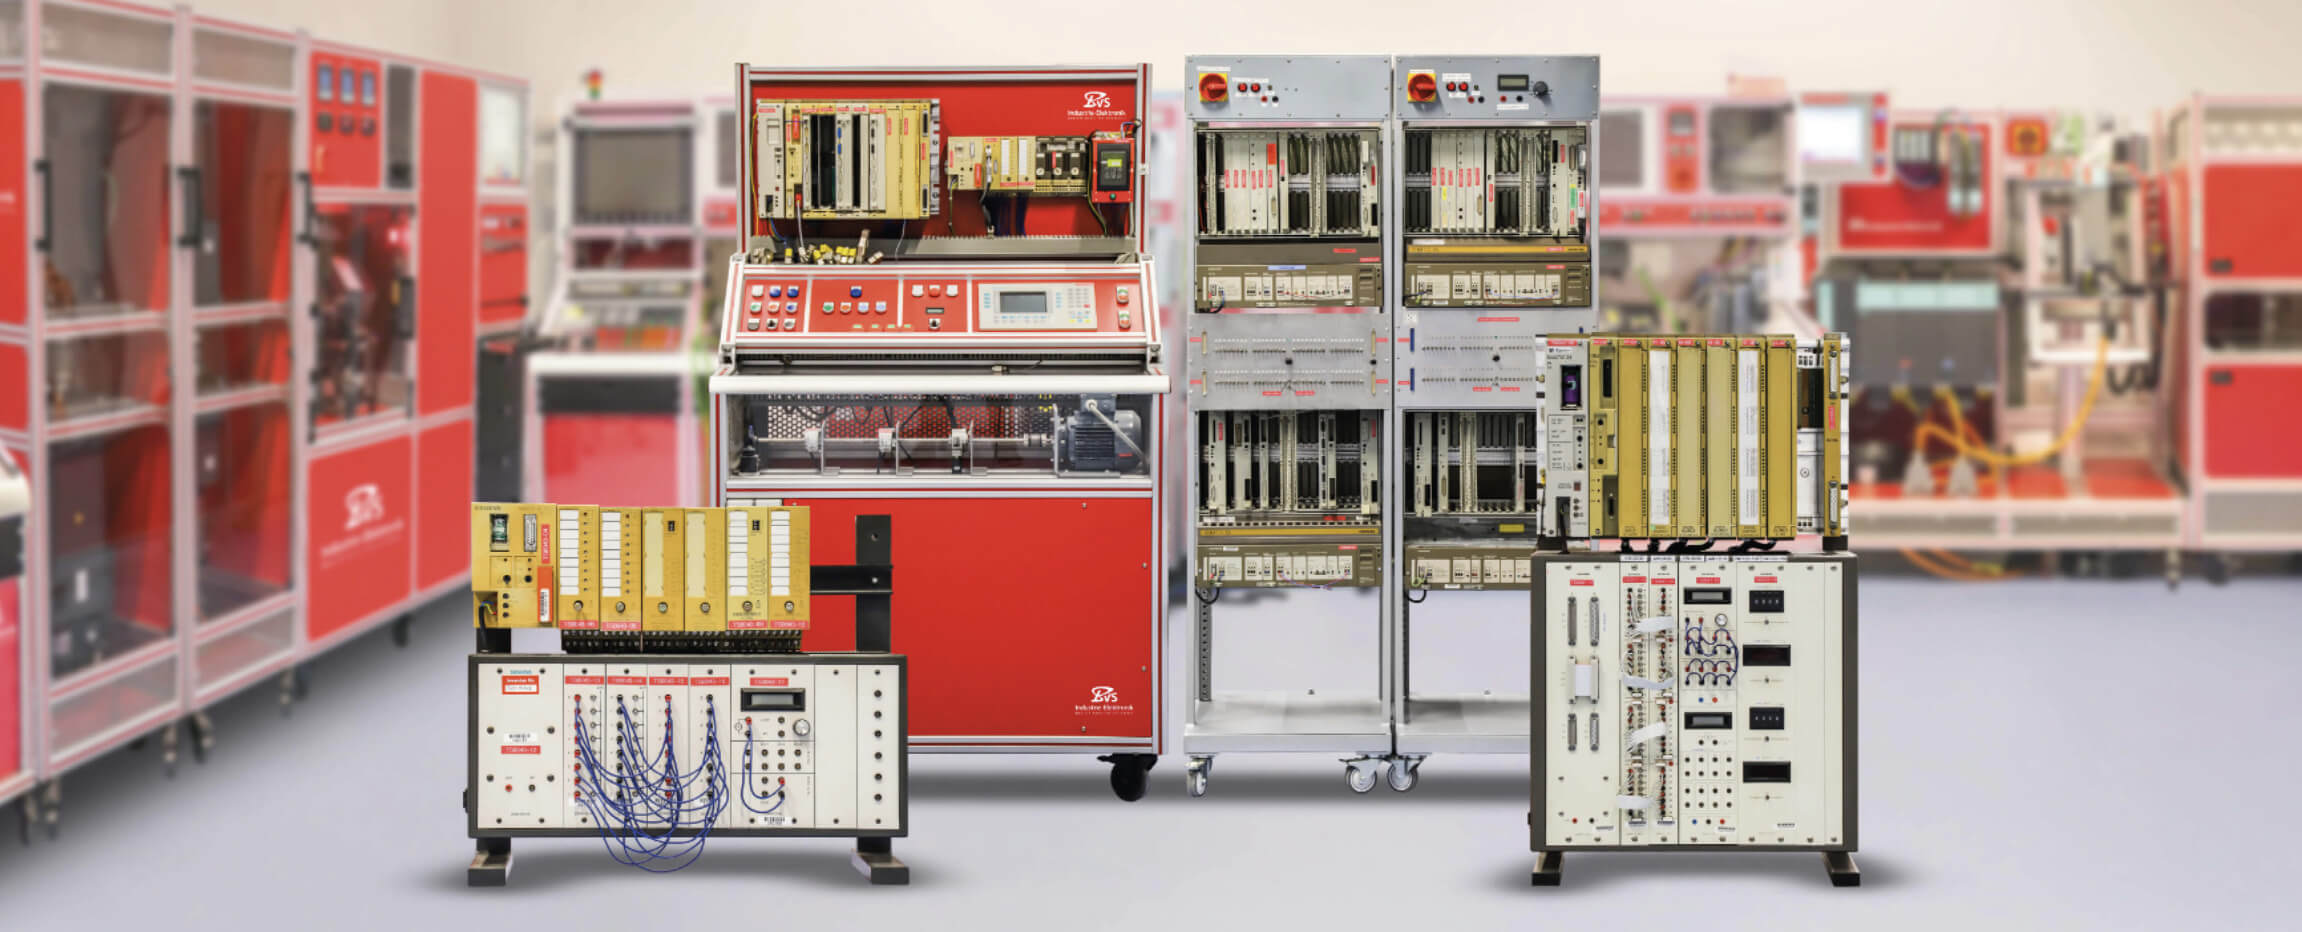 Our Promise of Quality - Test Stands - BVS Industrie-Elektronik